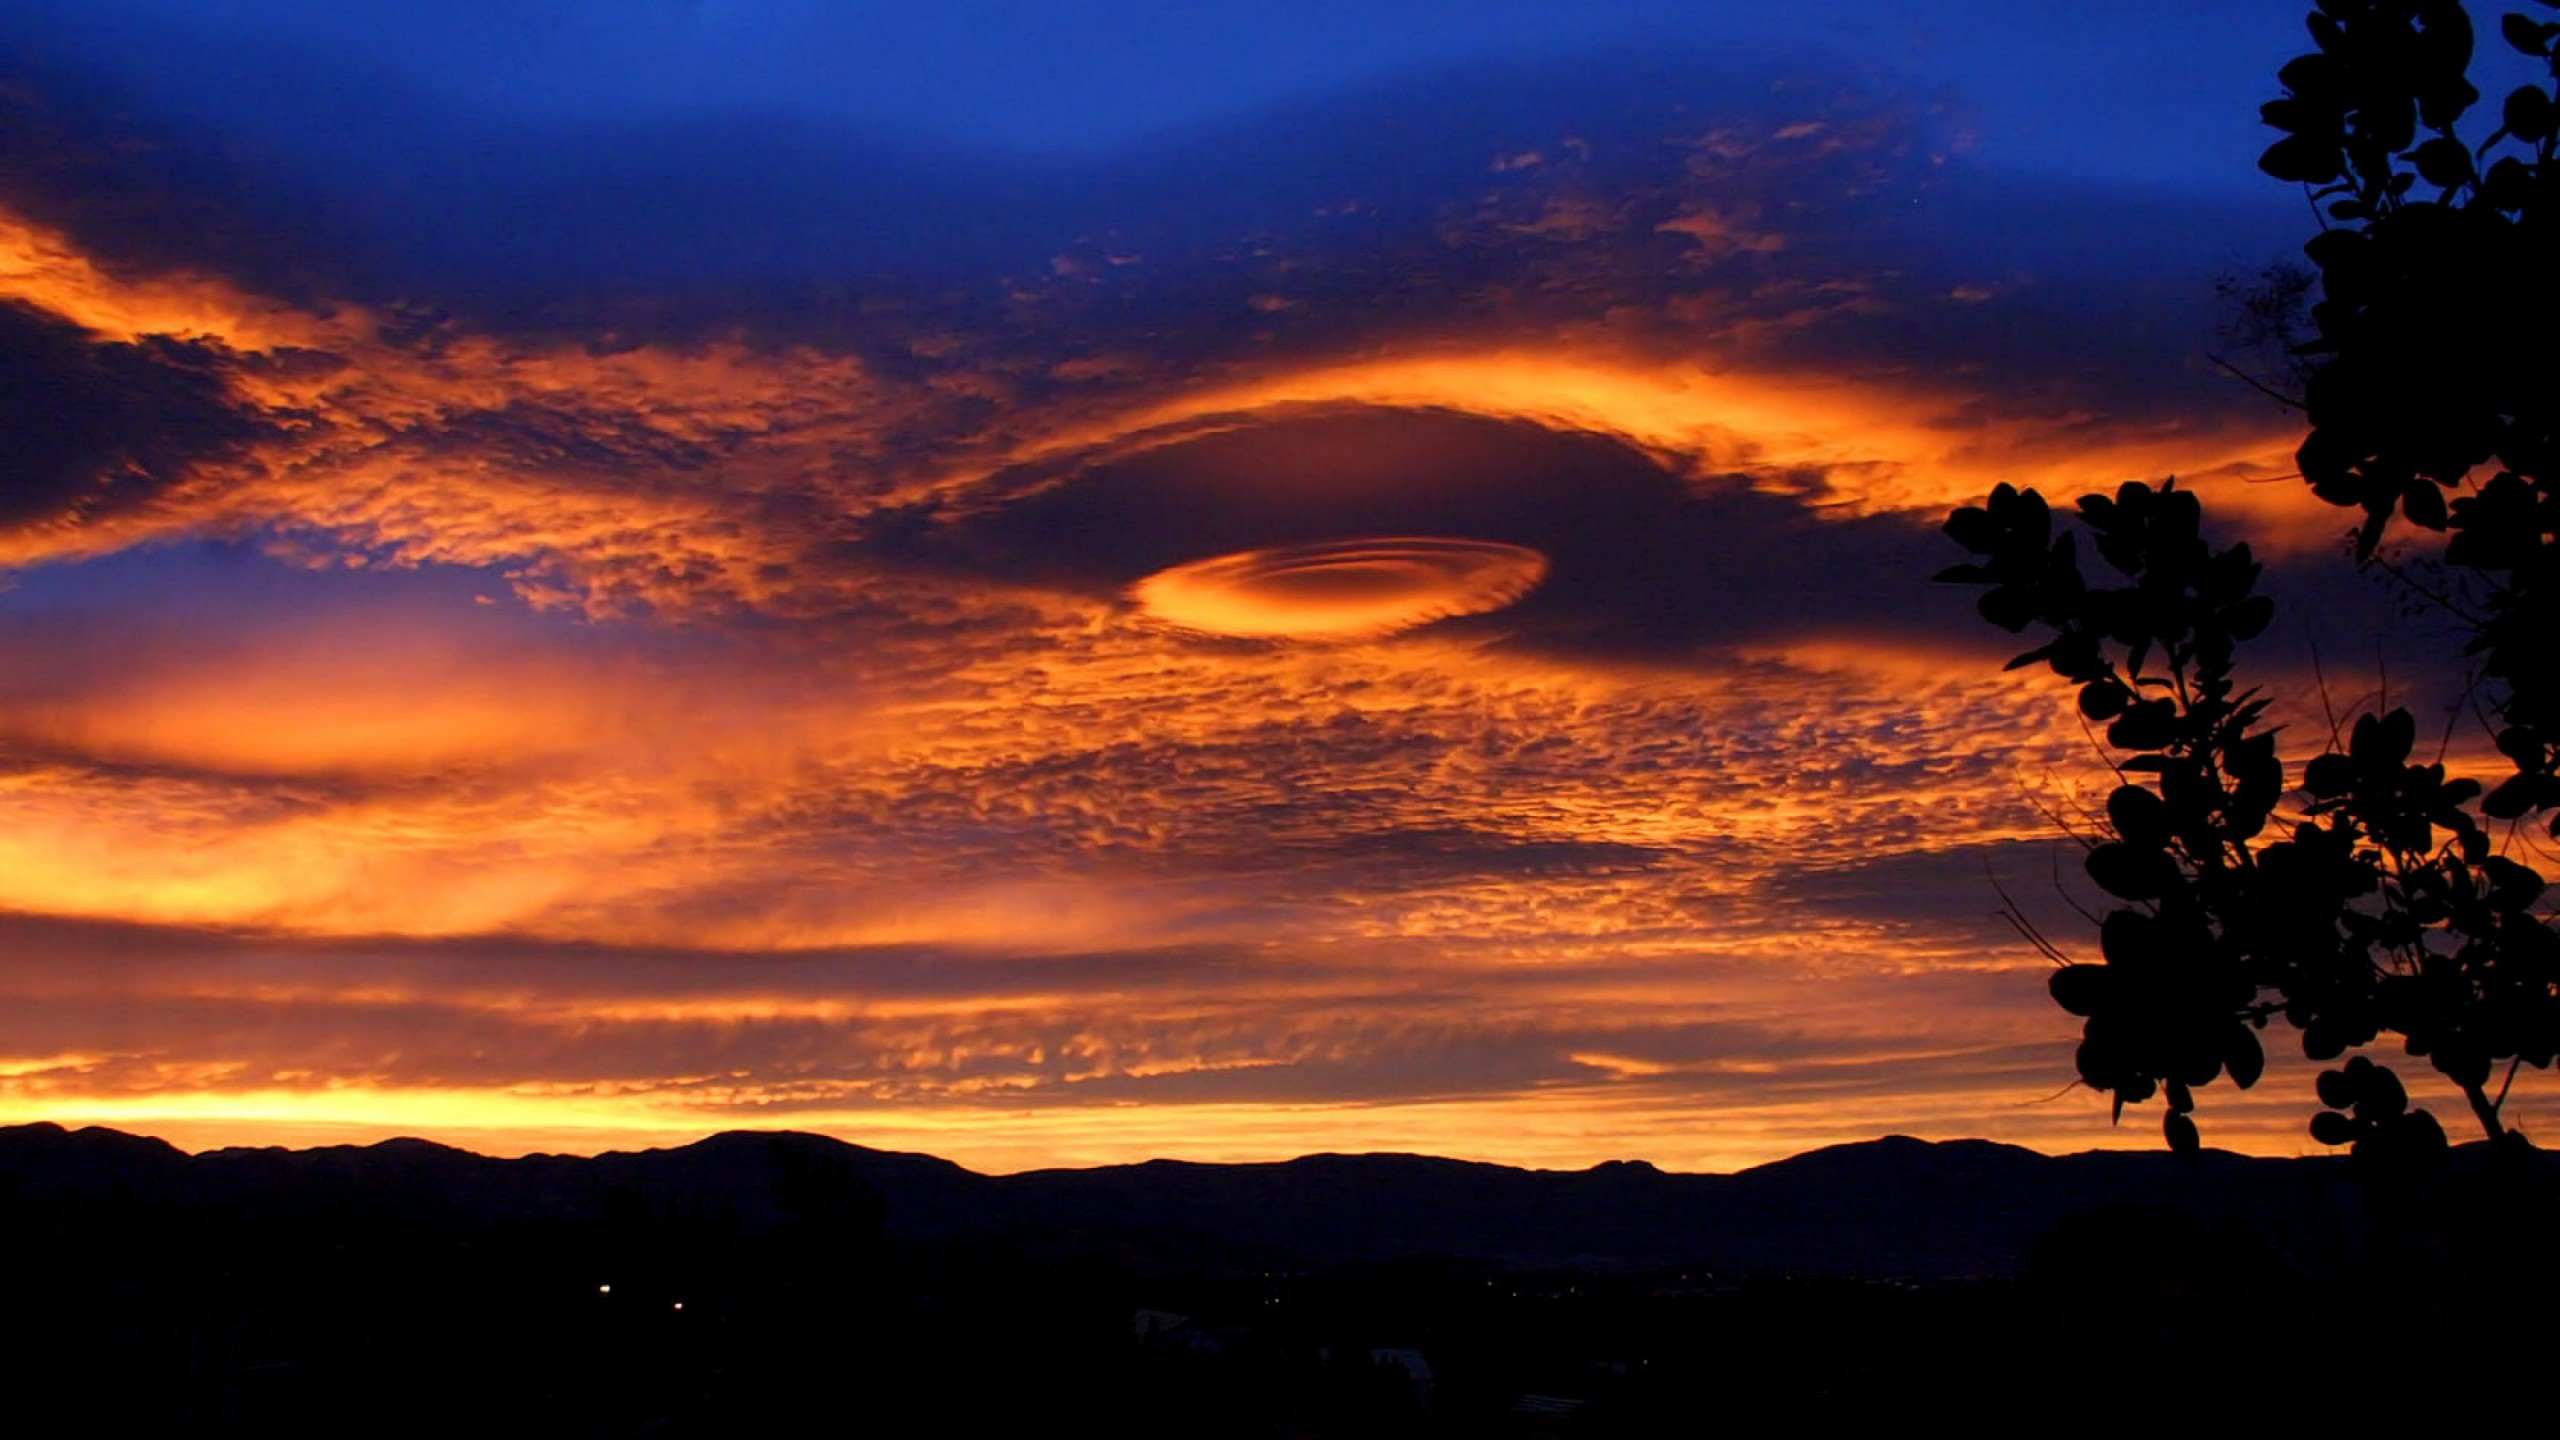 sunset_in_reno_wallpaper_2560x1440